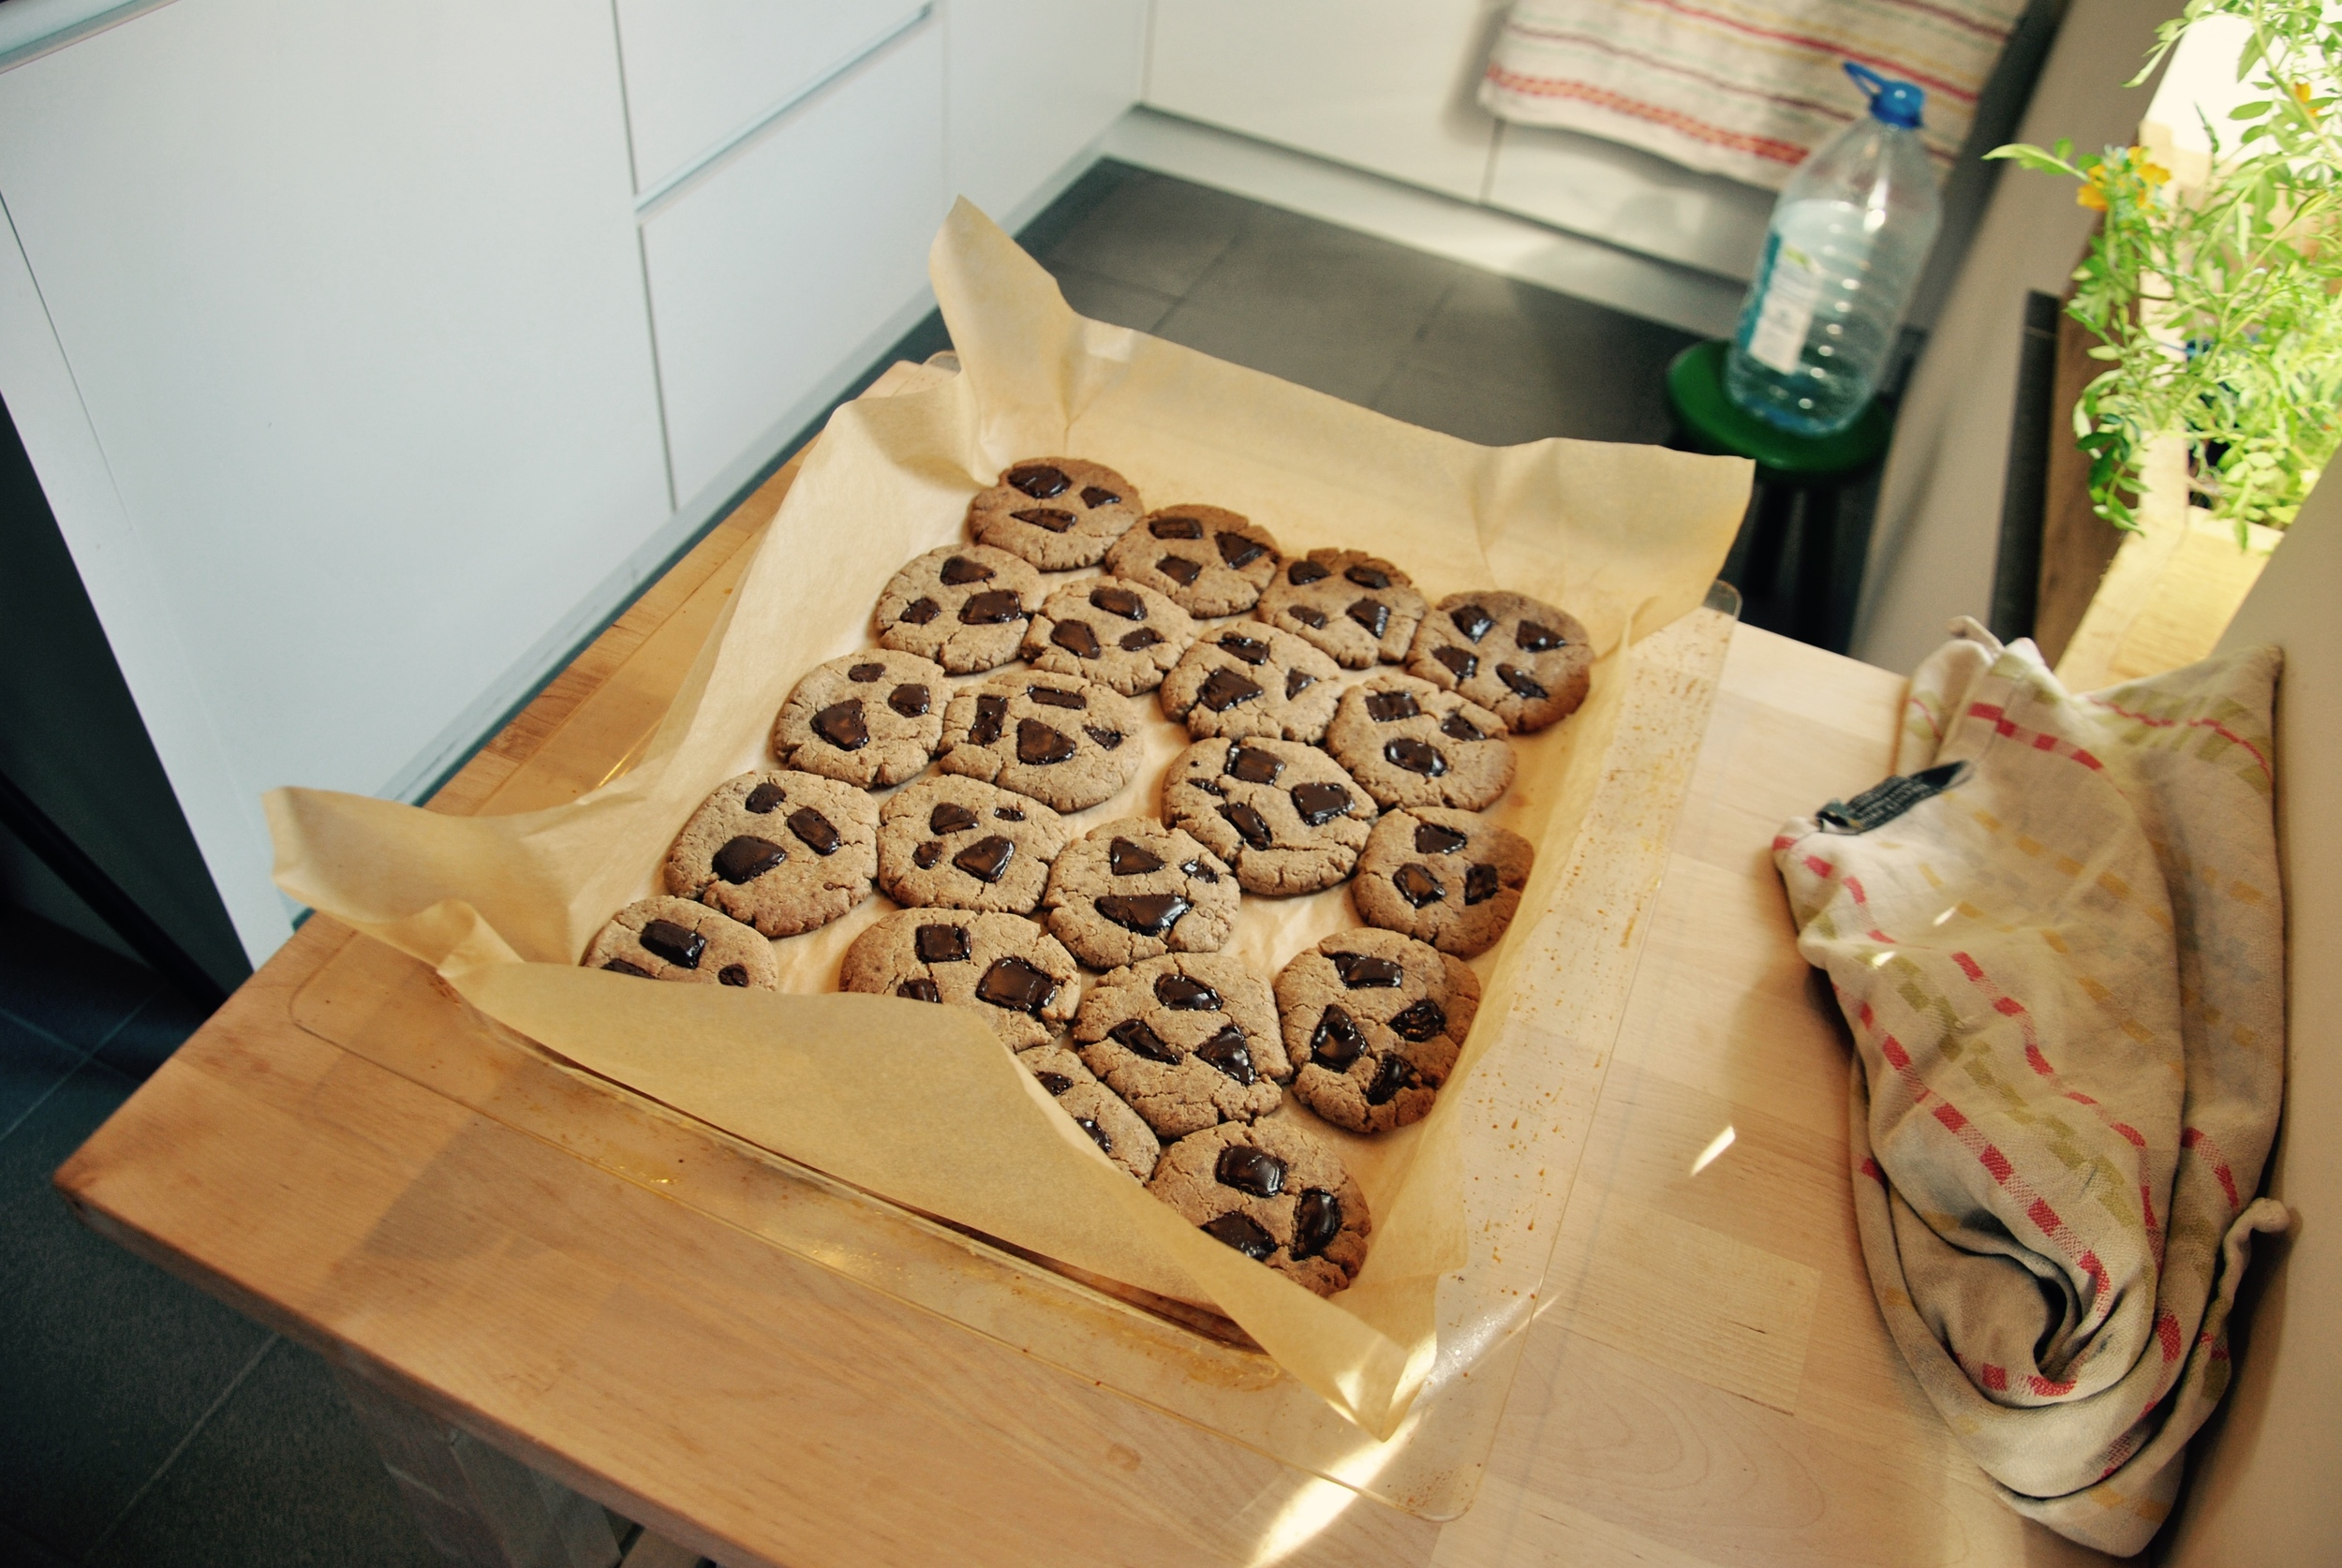 One Green Planet's ice cream sandwiches turned into chocolate chip cookies.